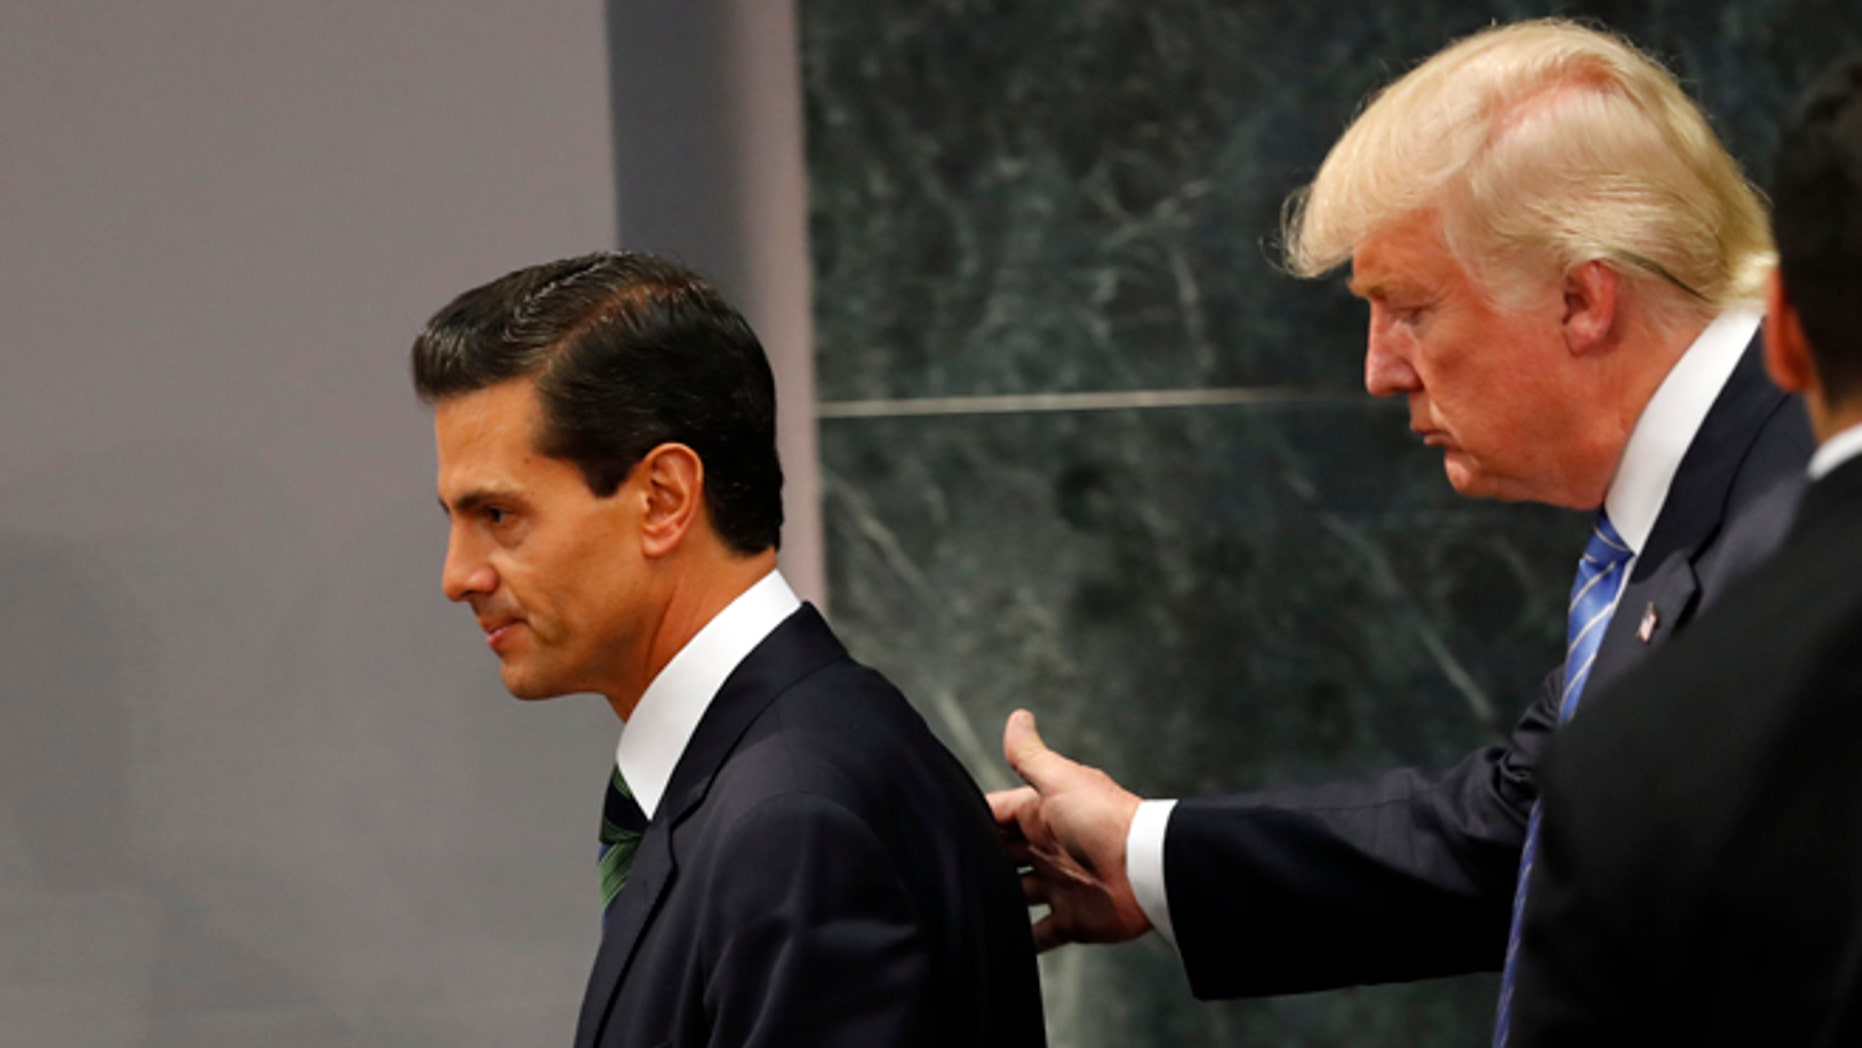 Republican presidential nominee Donald Trump walks with Mexico President Enrique Pena Nieto at the end of their joint statement at Los Pinos, the presidential official residence, in Mexico City, Wednesday, Aug. 31, 2016. Trump is calling his surprise visit to Mexico City Wednesday a 'great honor.'  The Republican presidential nominee said after meeting with Peña Nieto that the pair had a substantive, direct and constructive exchange of ideas.(AP Photo/Dario Lopez-Mills)